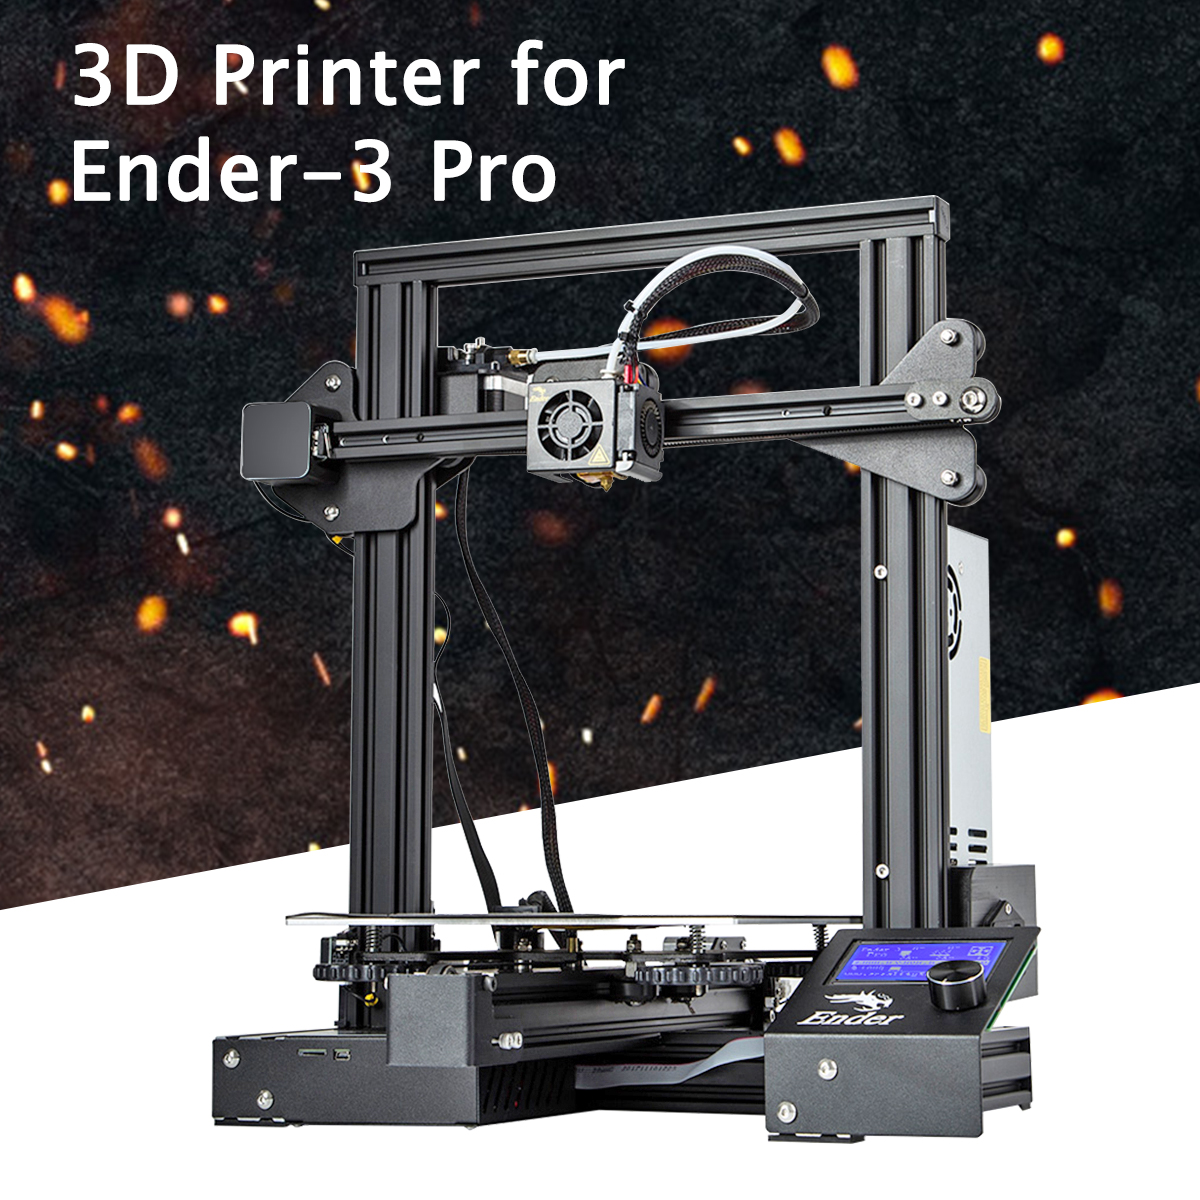 Ender® Creality 3 Pro DIY 3D Printer Upgraded High-P recision Printing  Quality Kit + Magnetic Heated Bed Power 220x220x250mm 1 75mm PLA Filament  270W